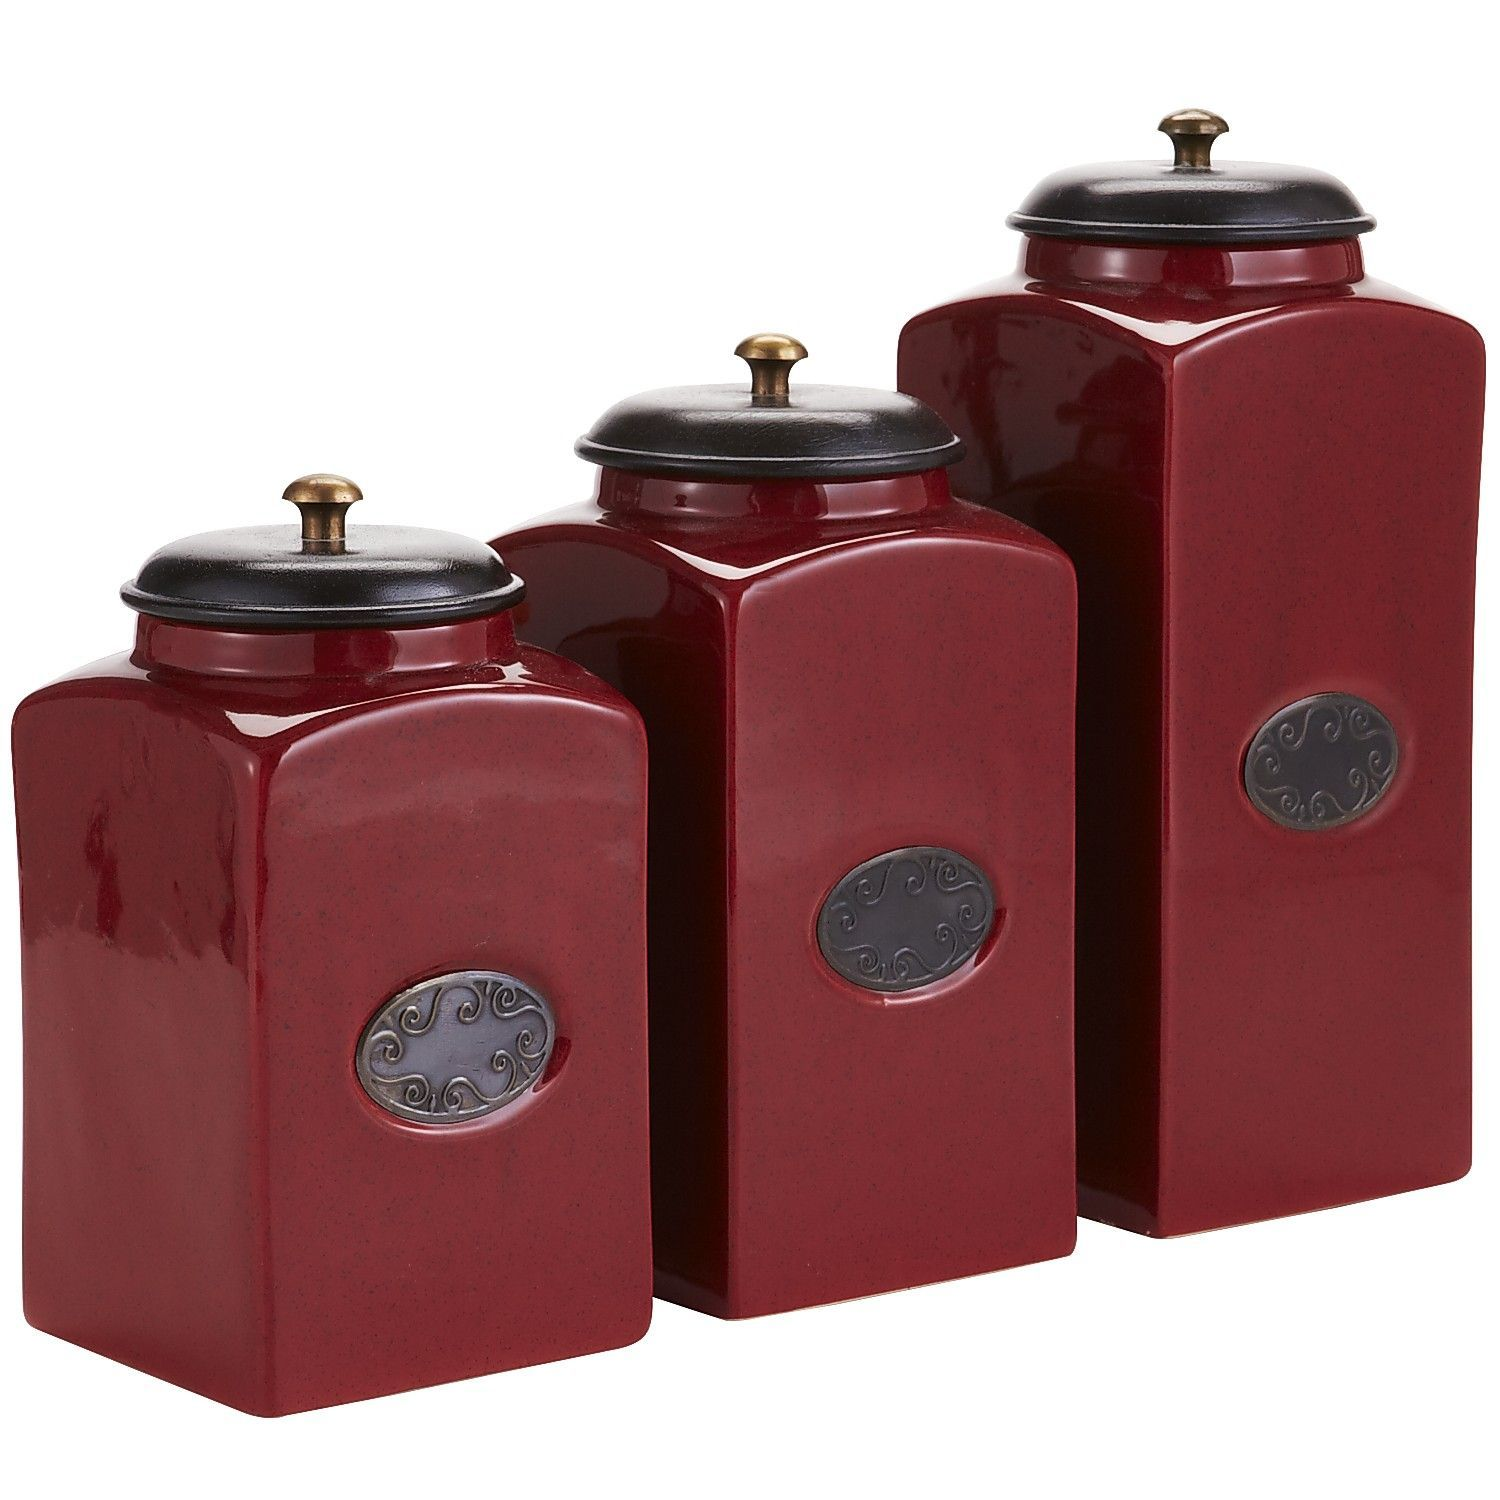 Red Ceramic Canisters from Pier 1 | New House | Pinterest